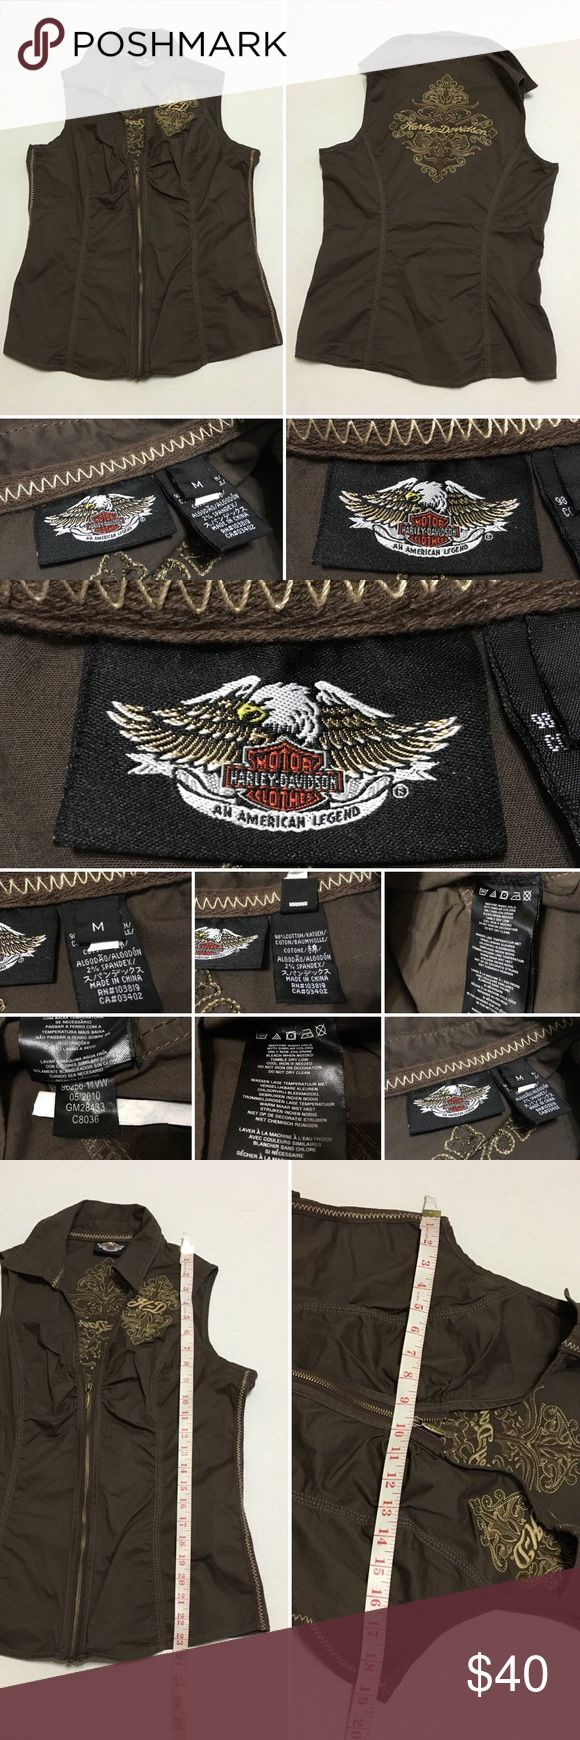 Harley Davidson vest top logo Zip embroidery stud Harley Davidson women vest top size M Sleeveless Cotton logo Zip embroidery stud.  Very good used condition.  Front zipper with logo Hardware zipper pull.  Gorgeous embroidery with brass look studs embellished.  Contrast stitches.  Smoke and pet free. Measurements included for proper fit. Harley-Davidson Jackets & Coats Vests